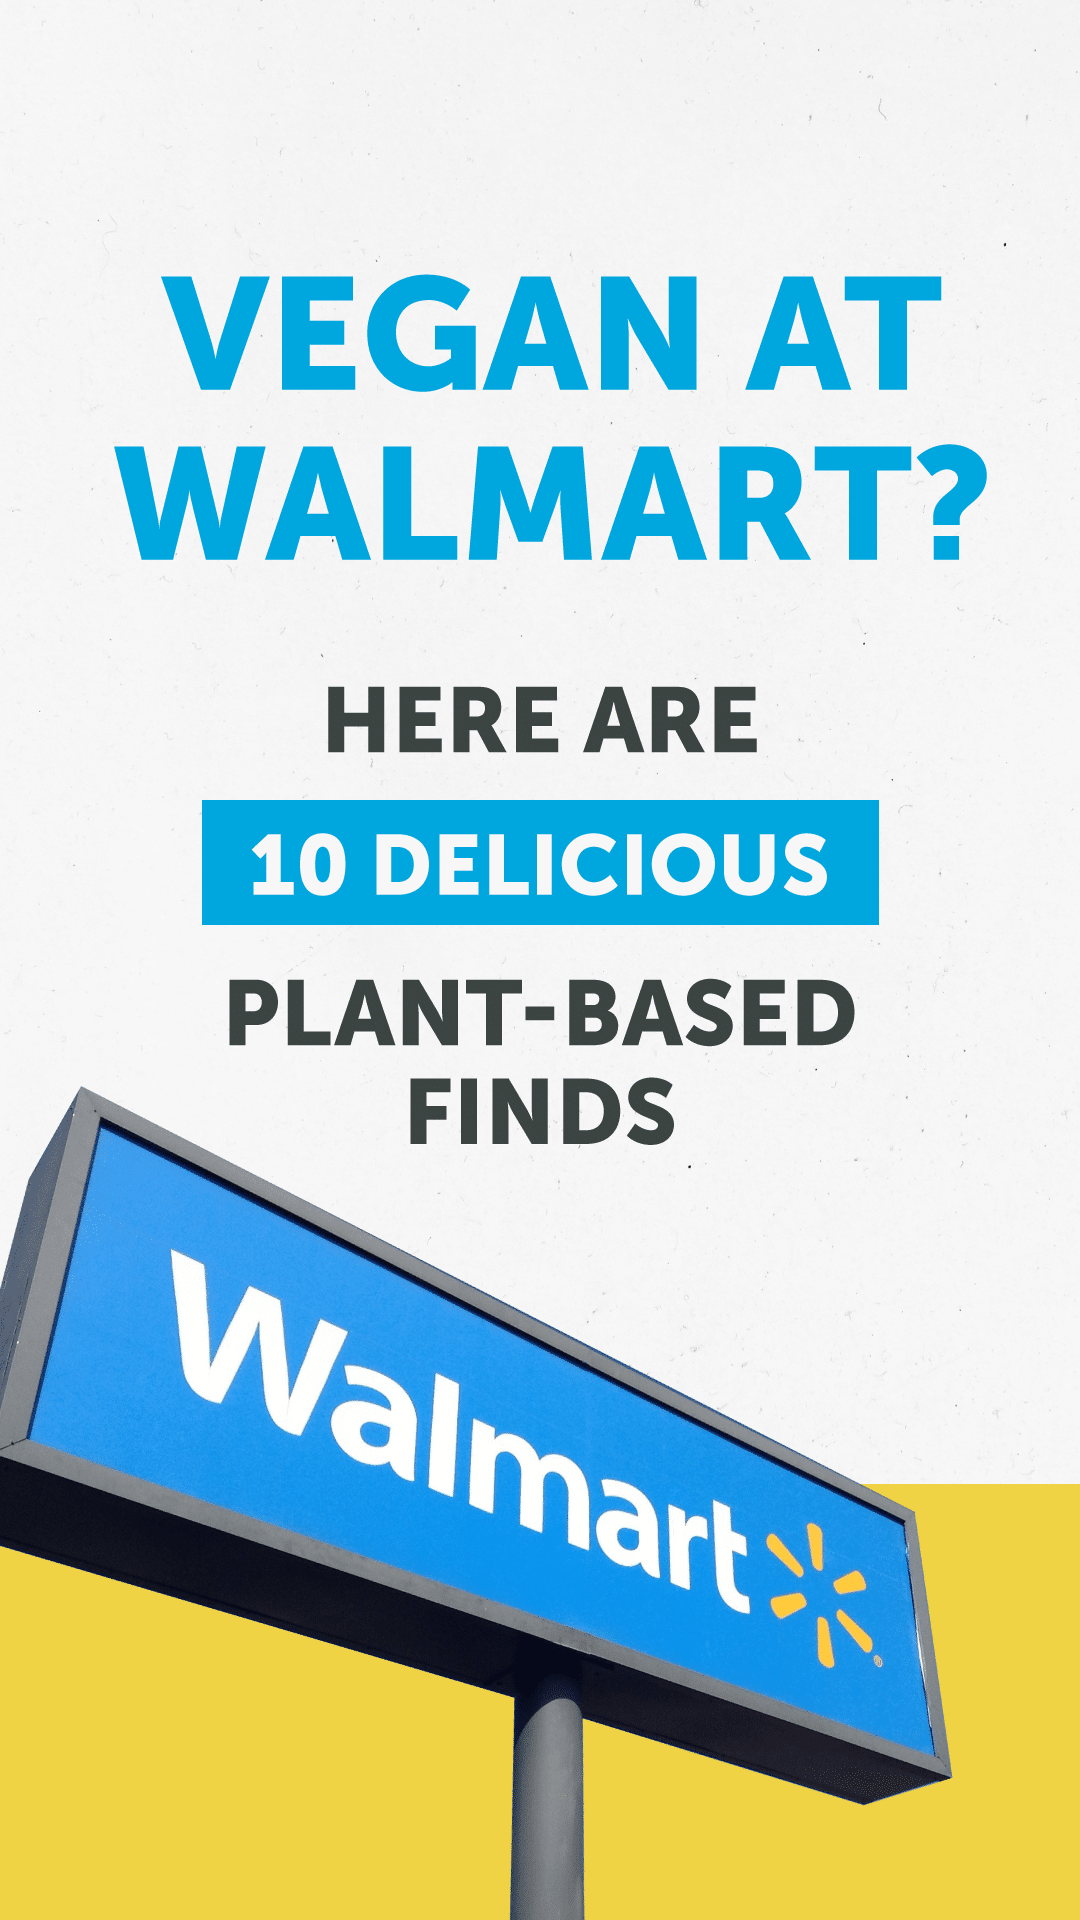 Vegan at Walmart? Here Are 10 Delicious Plant-Based Finds